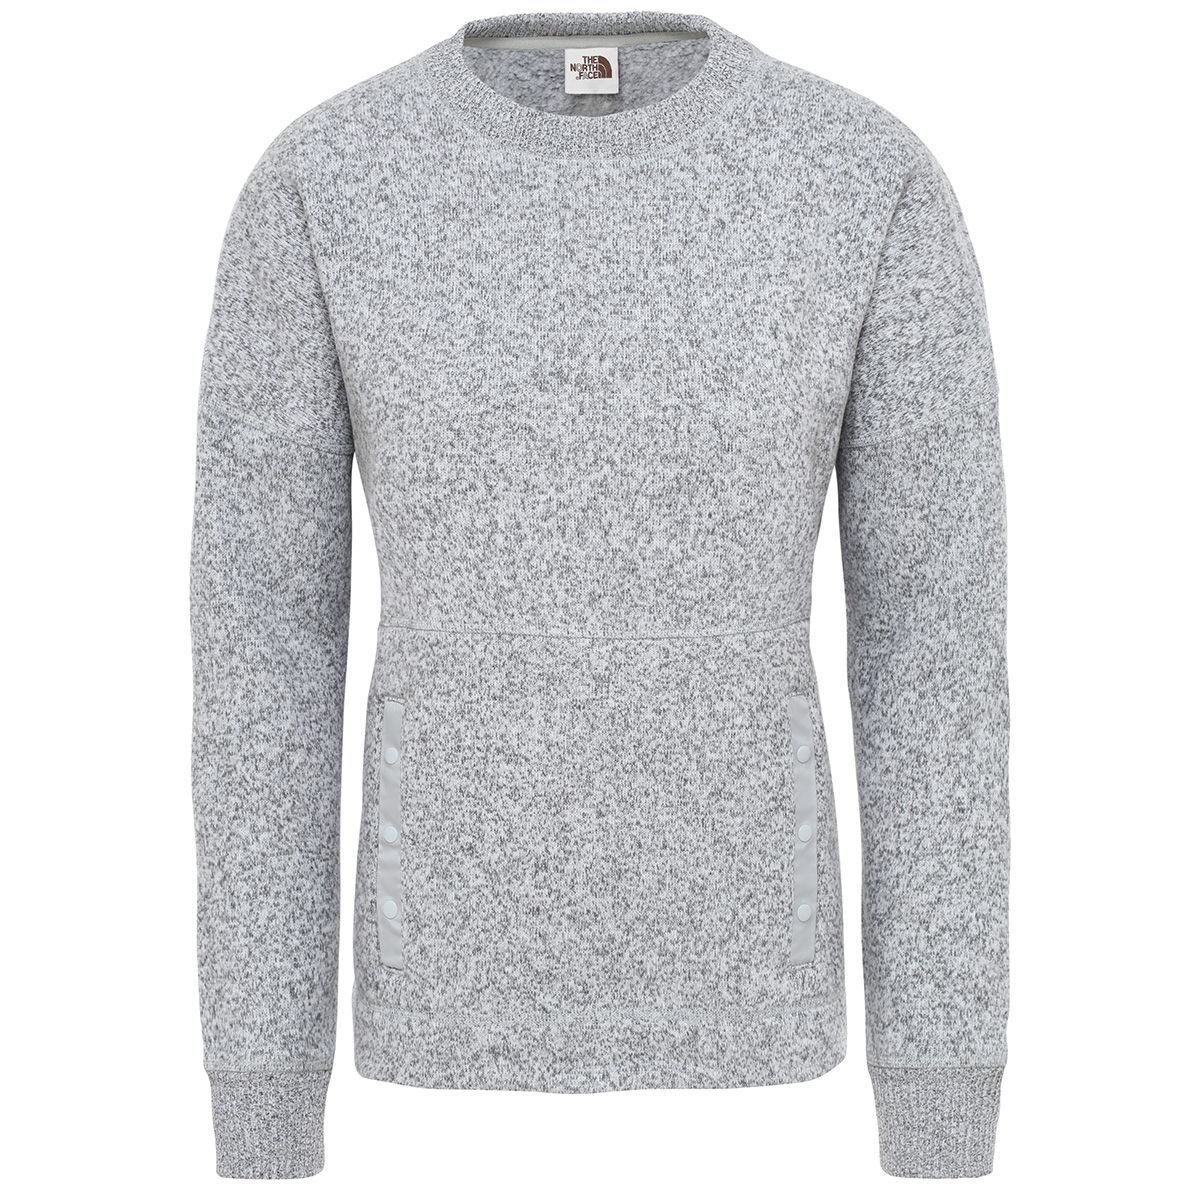 The North Face Damen Crescent Pullover (Größe XS, Grau) | Pullover > Damen